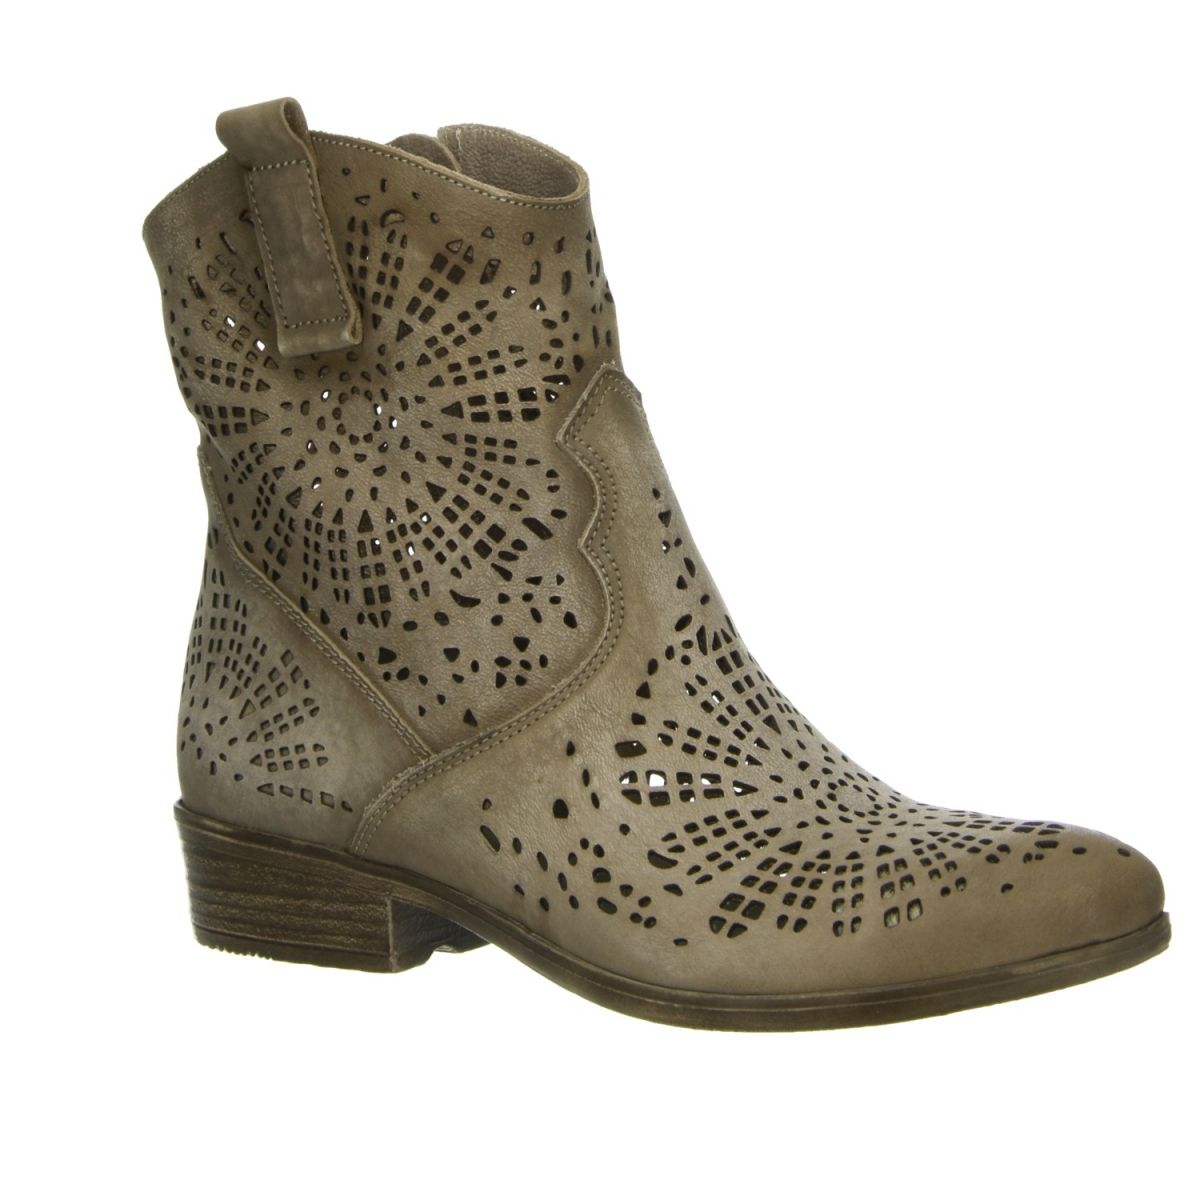 best sneakers 97389 6ff2e Kim Kay - Stiefelette Taupe im Salamander Onlineshop ...